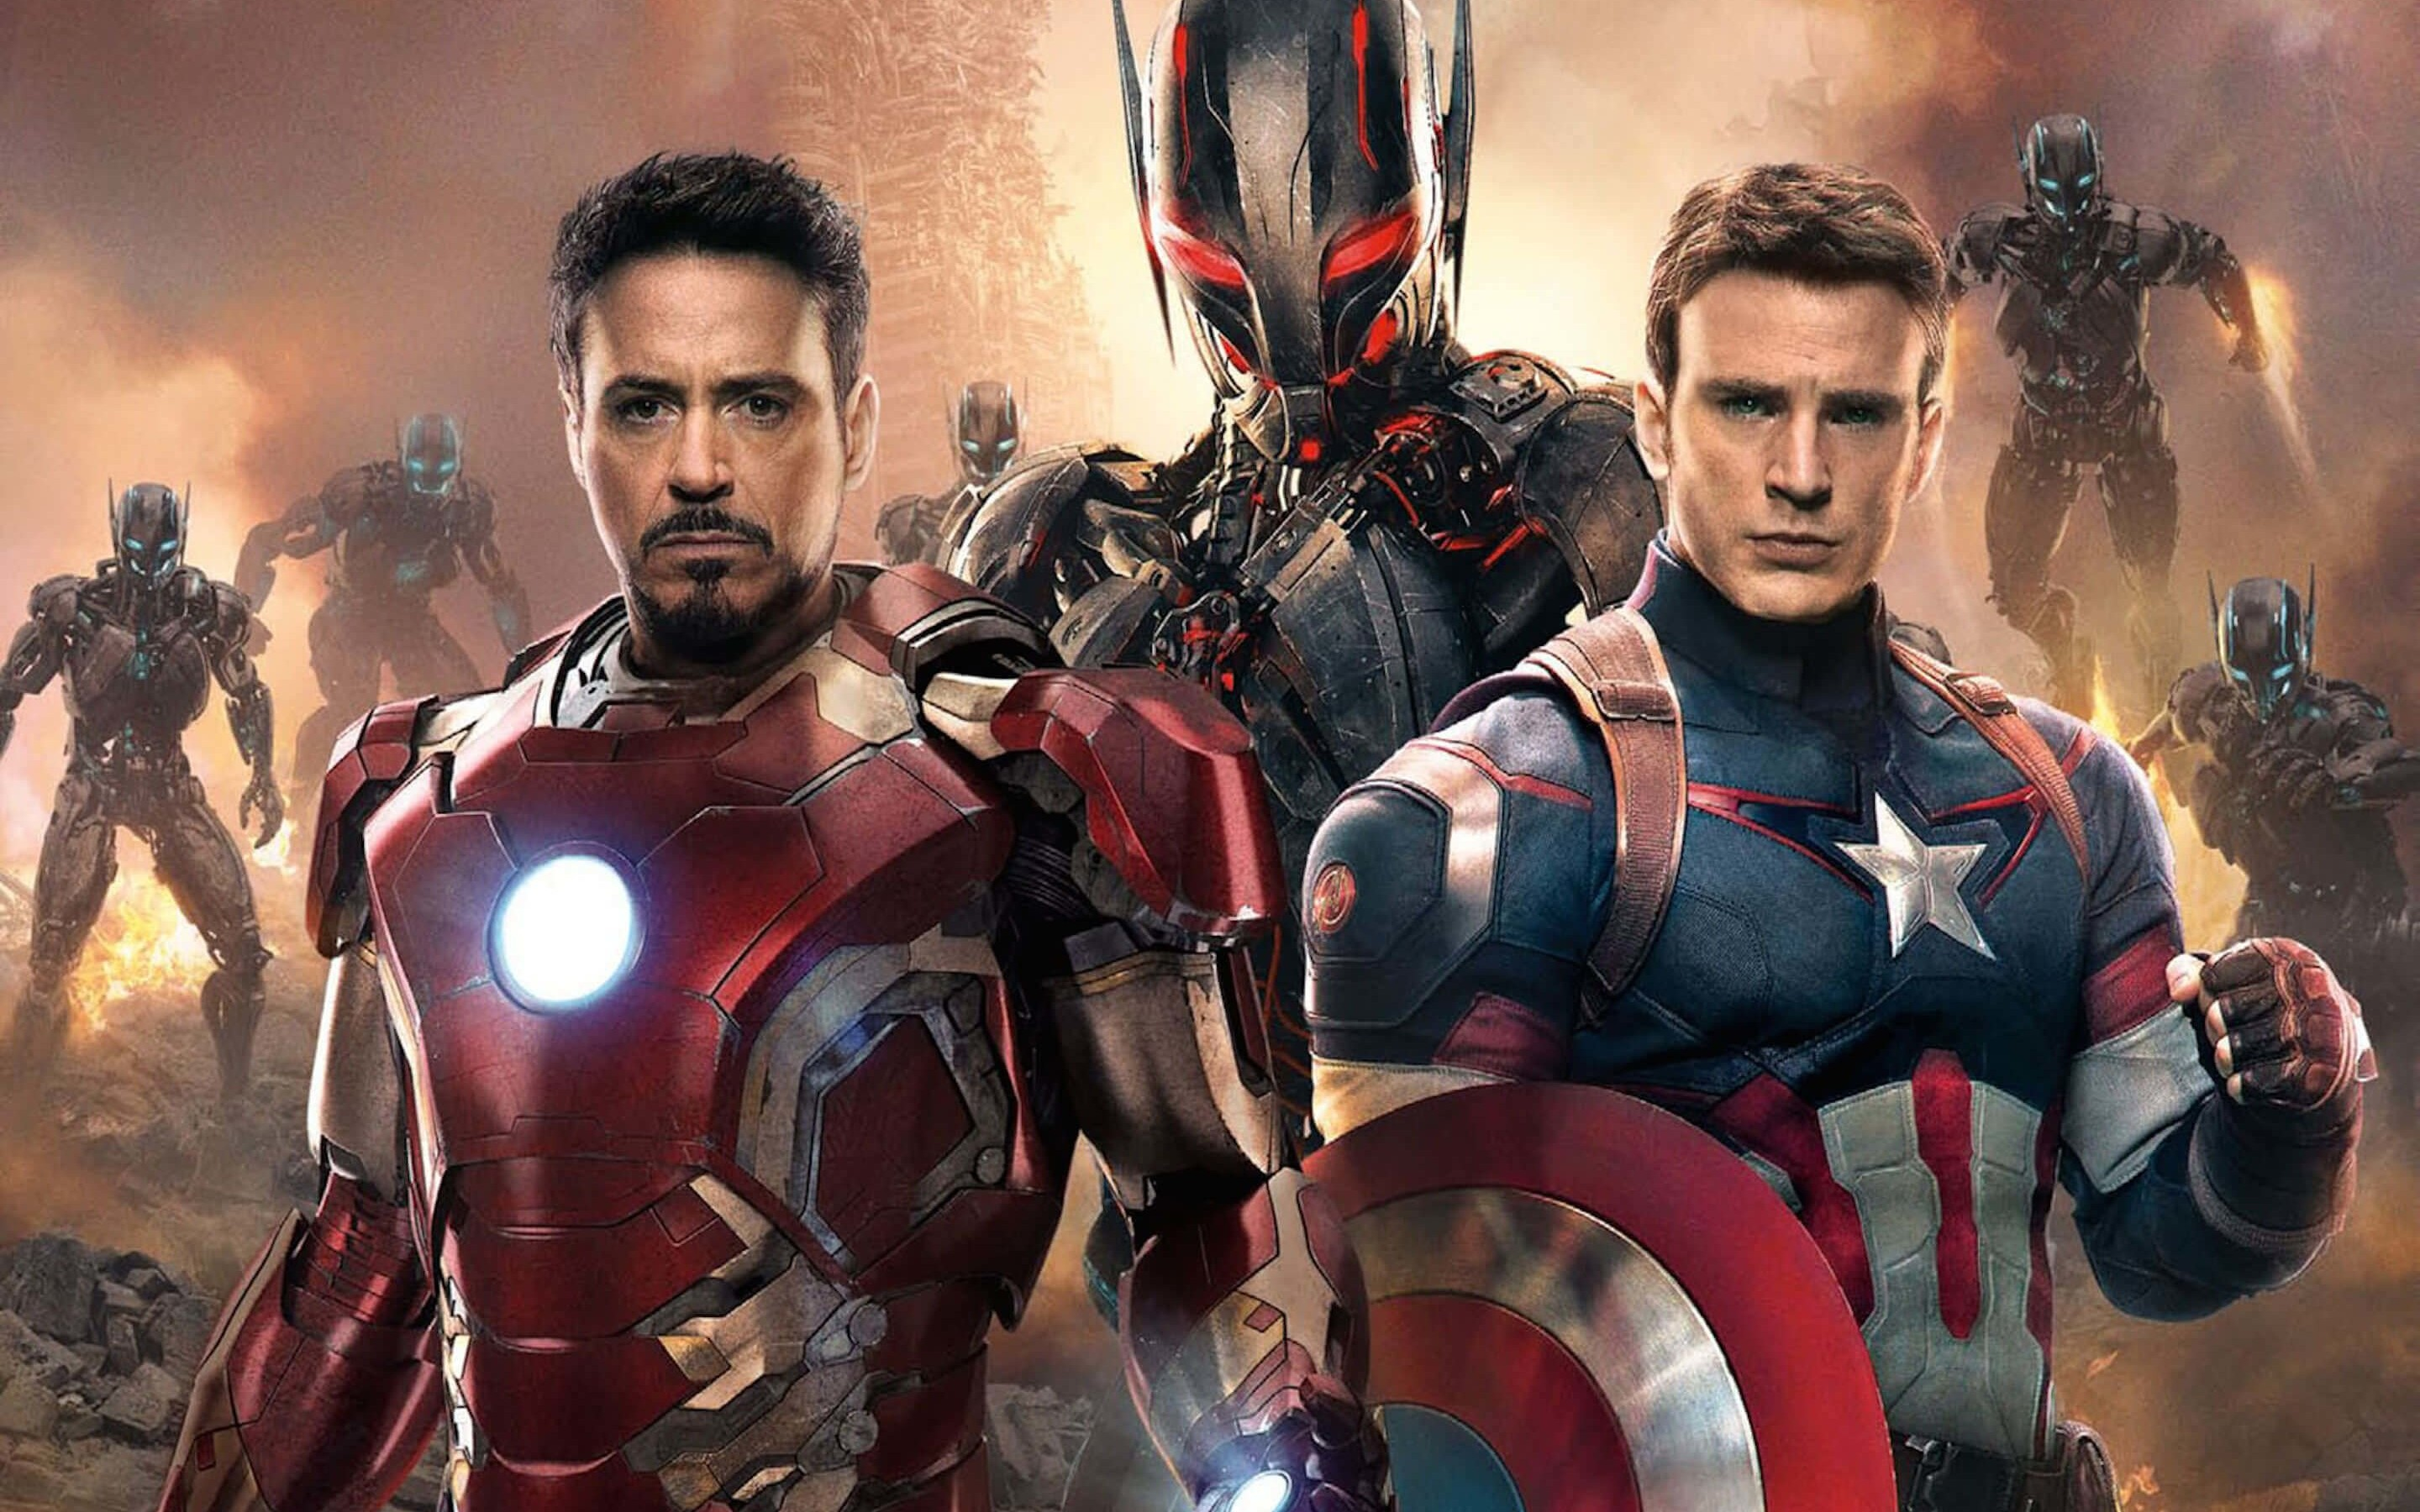 The Avengers: Age of Ultron - Iron Man and Captain America Wallpaper for Desktop 2880x1800